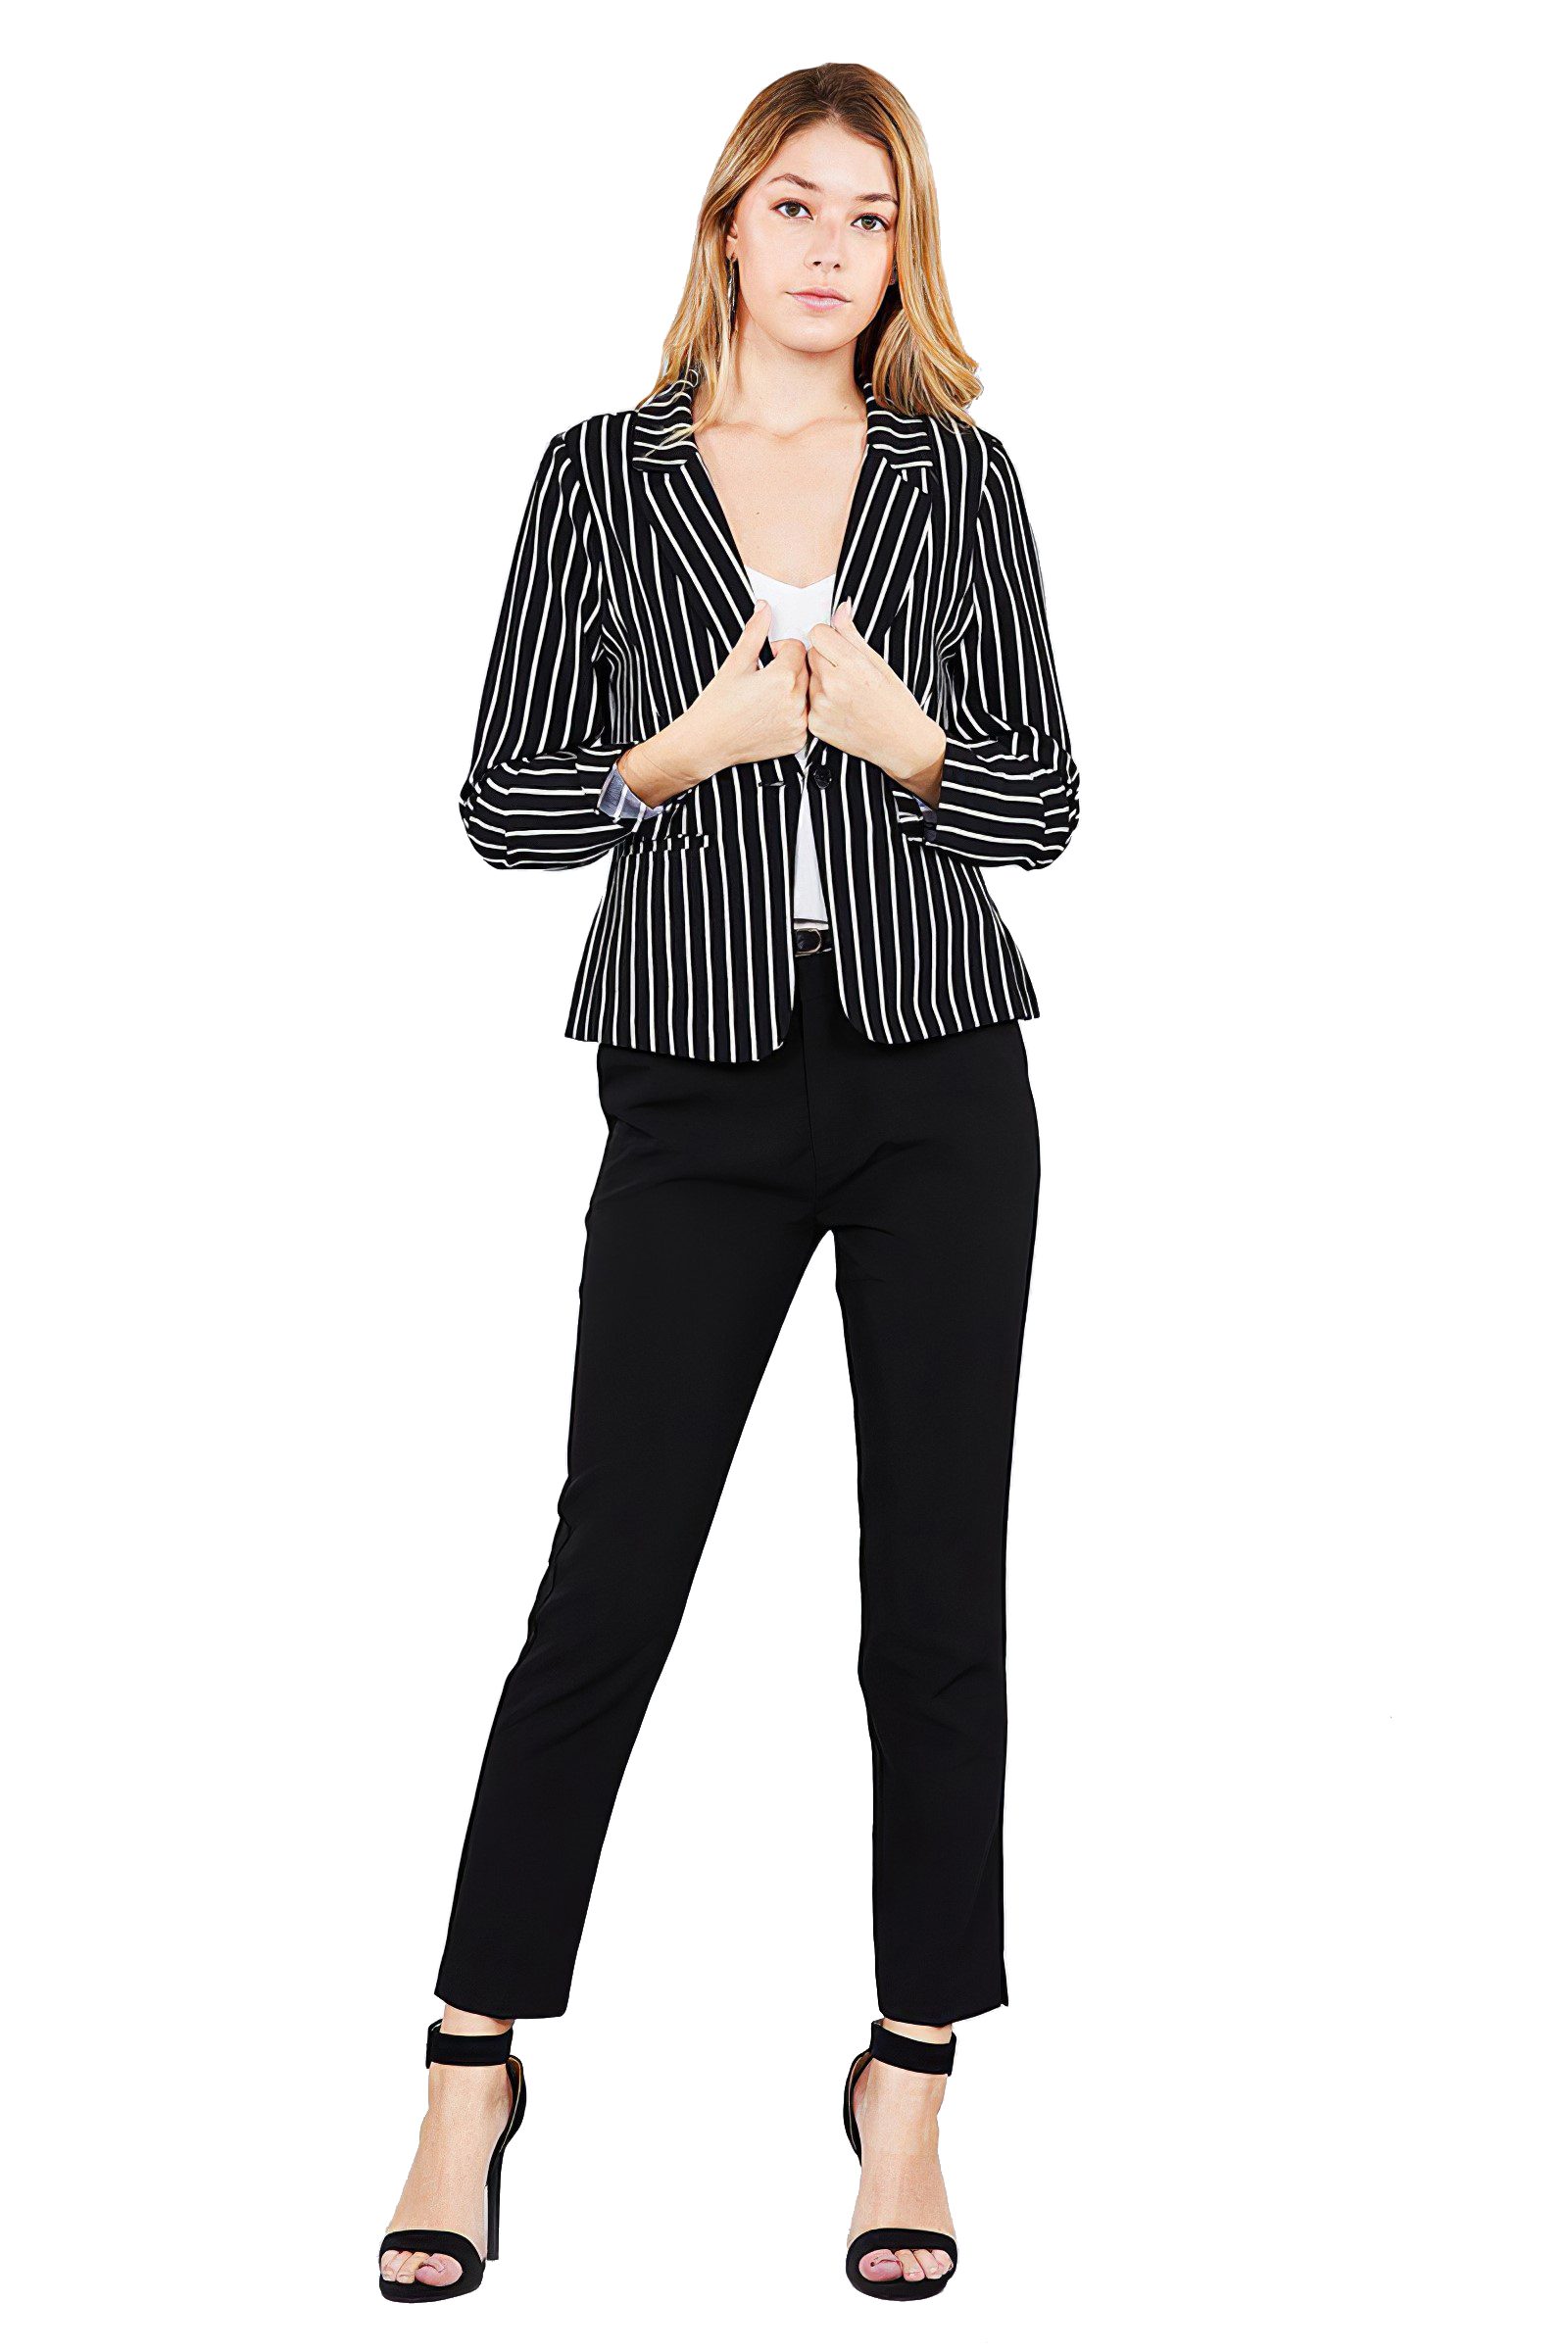 Women-039-s-Juniors-Premium-Stretch-Striped-Long-Sleeve-Jacket thumbnail 7